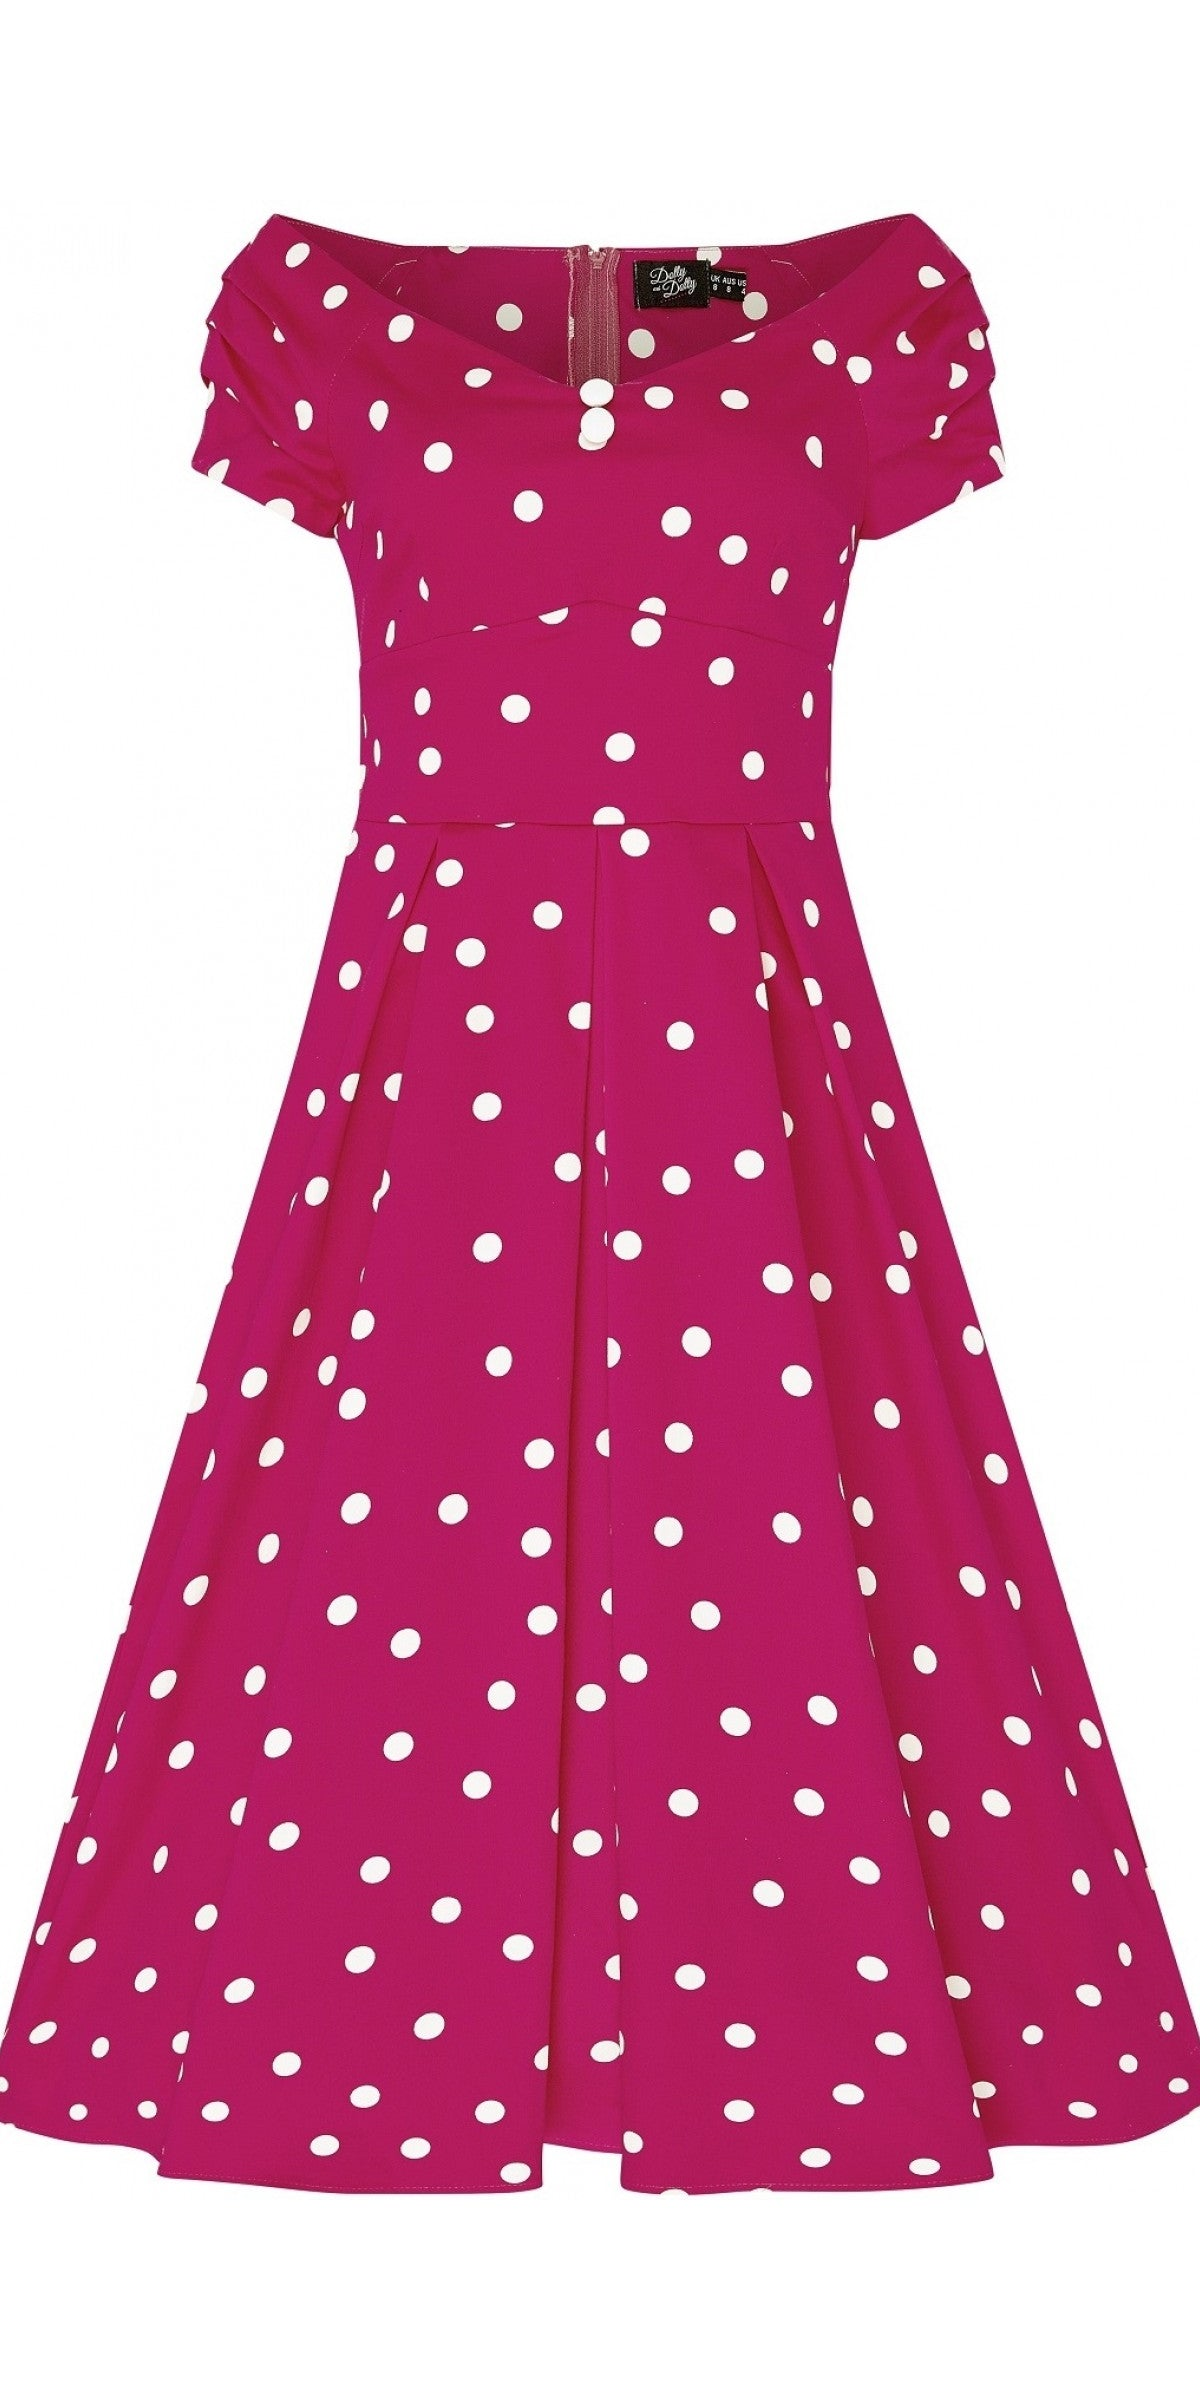 Lily Pink Polka Dot Swing Dress